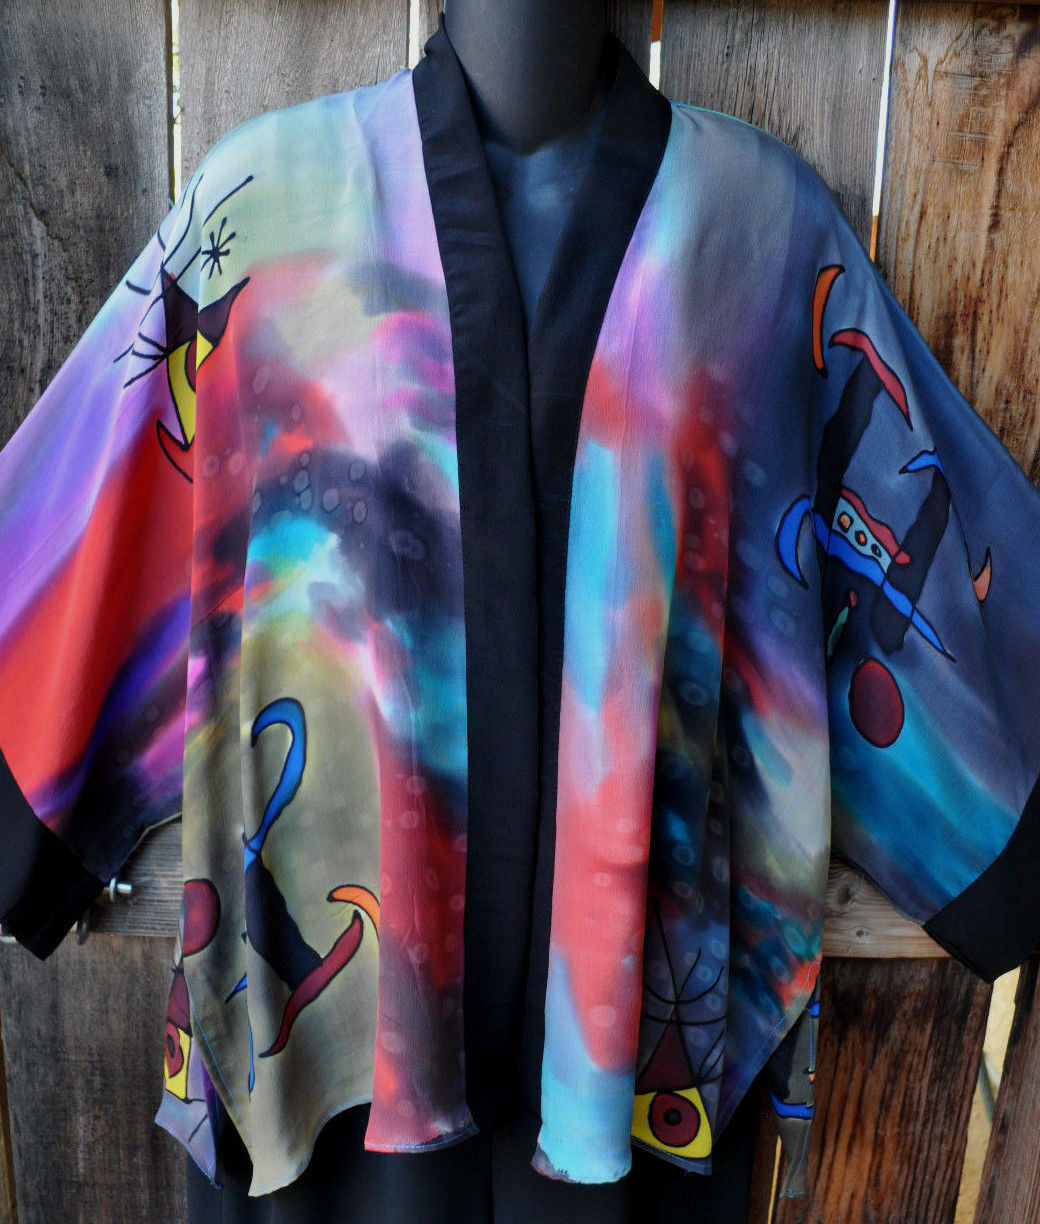 DILEMMA HAND PAINTED VITAL INSPIRED SILK ART TO WEAR KABUKI KIMONO-ONE OF A KIND